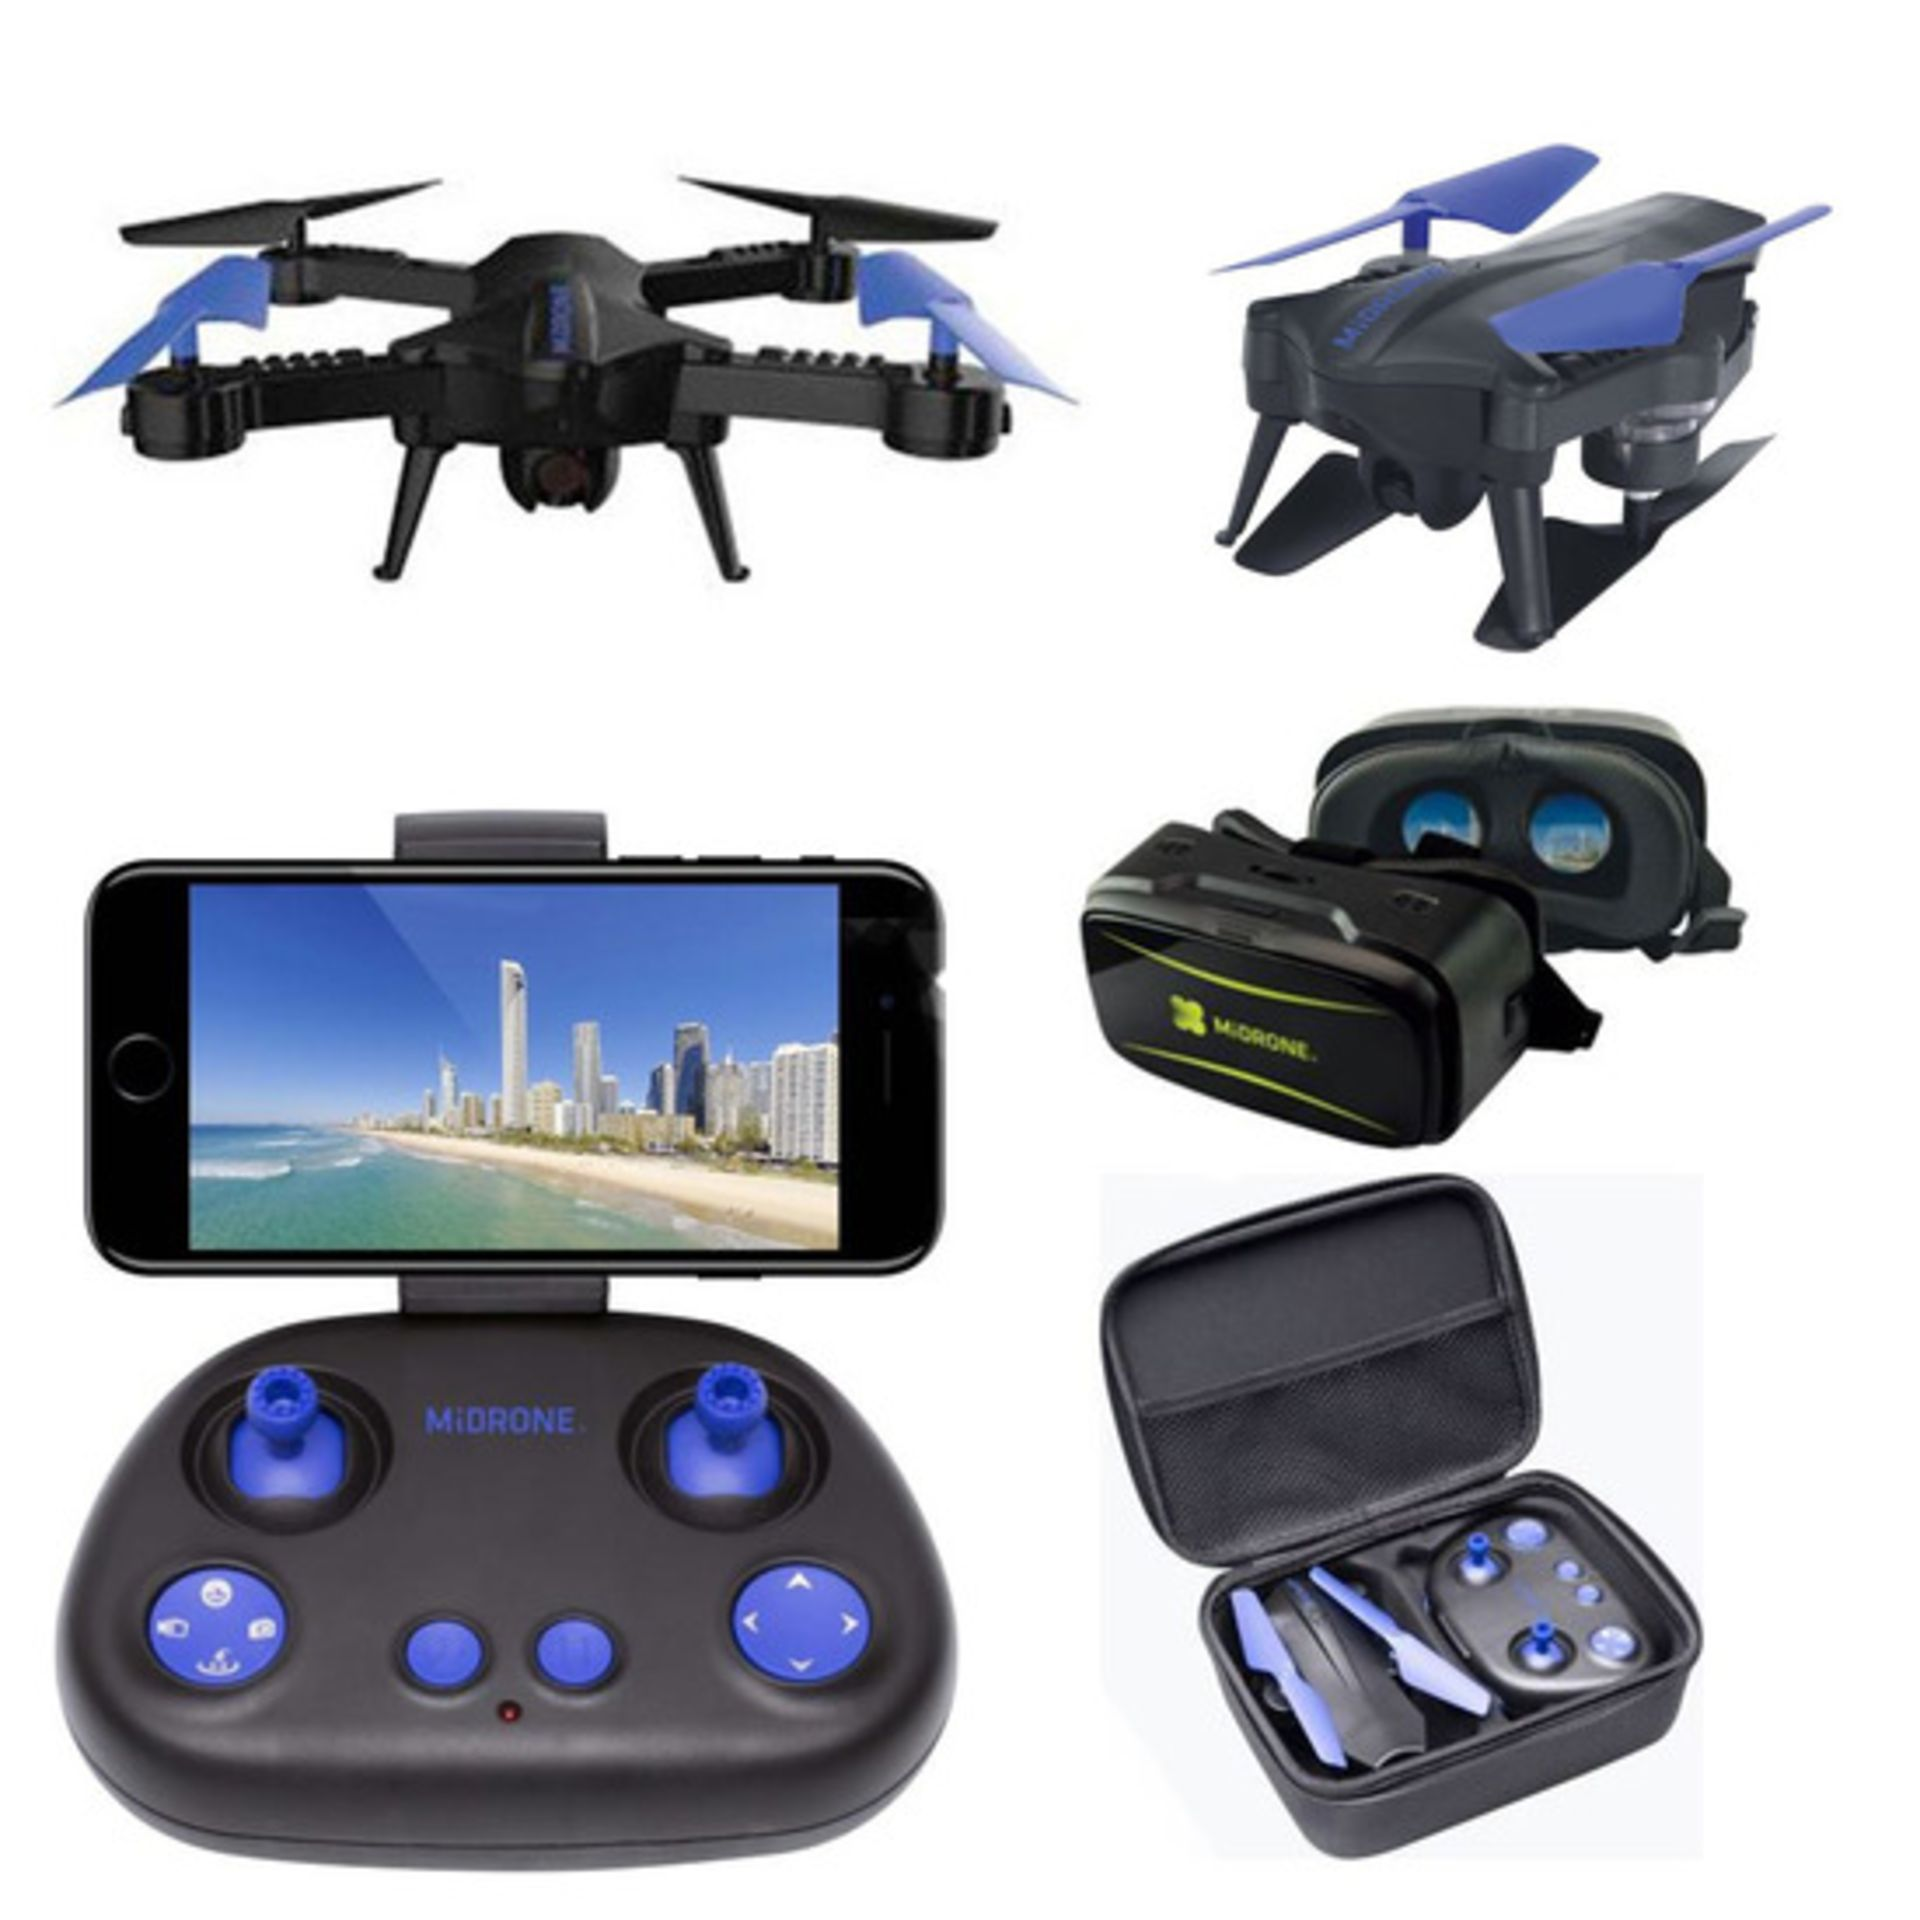 Lot 15781 - V Brand New MiDrone HD WiFi Drone With Intergrated Full HD Camera PLUS VR Kit (Goggles & Case) -